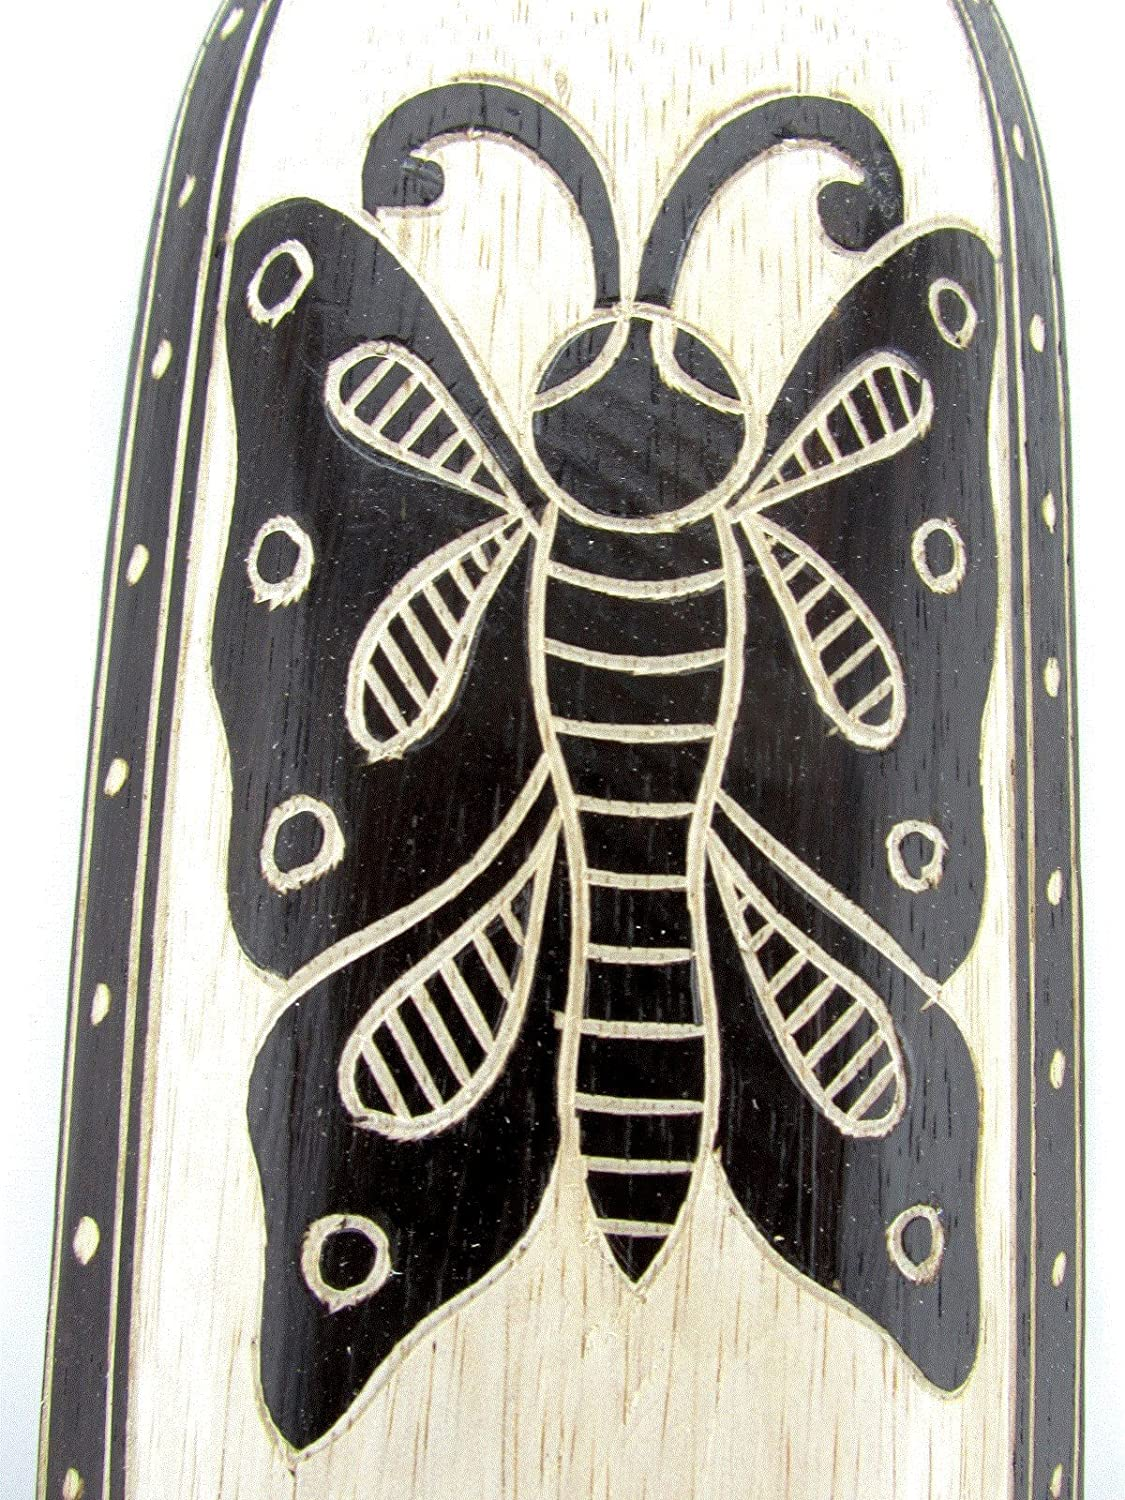 Blue Orchid African Masks Wall D/écor Large Hand Carved Wooden Animal Tribal Tiki Decorative 19 Mystic Butterfly L